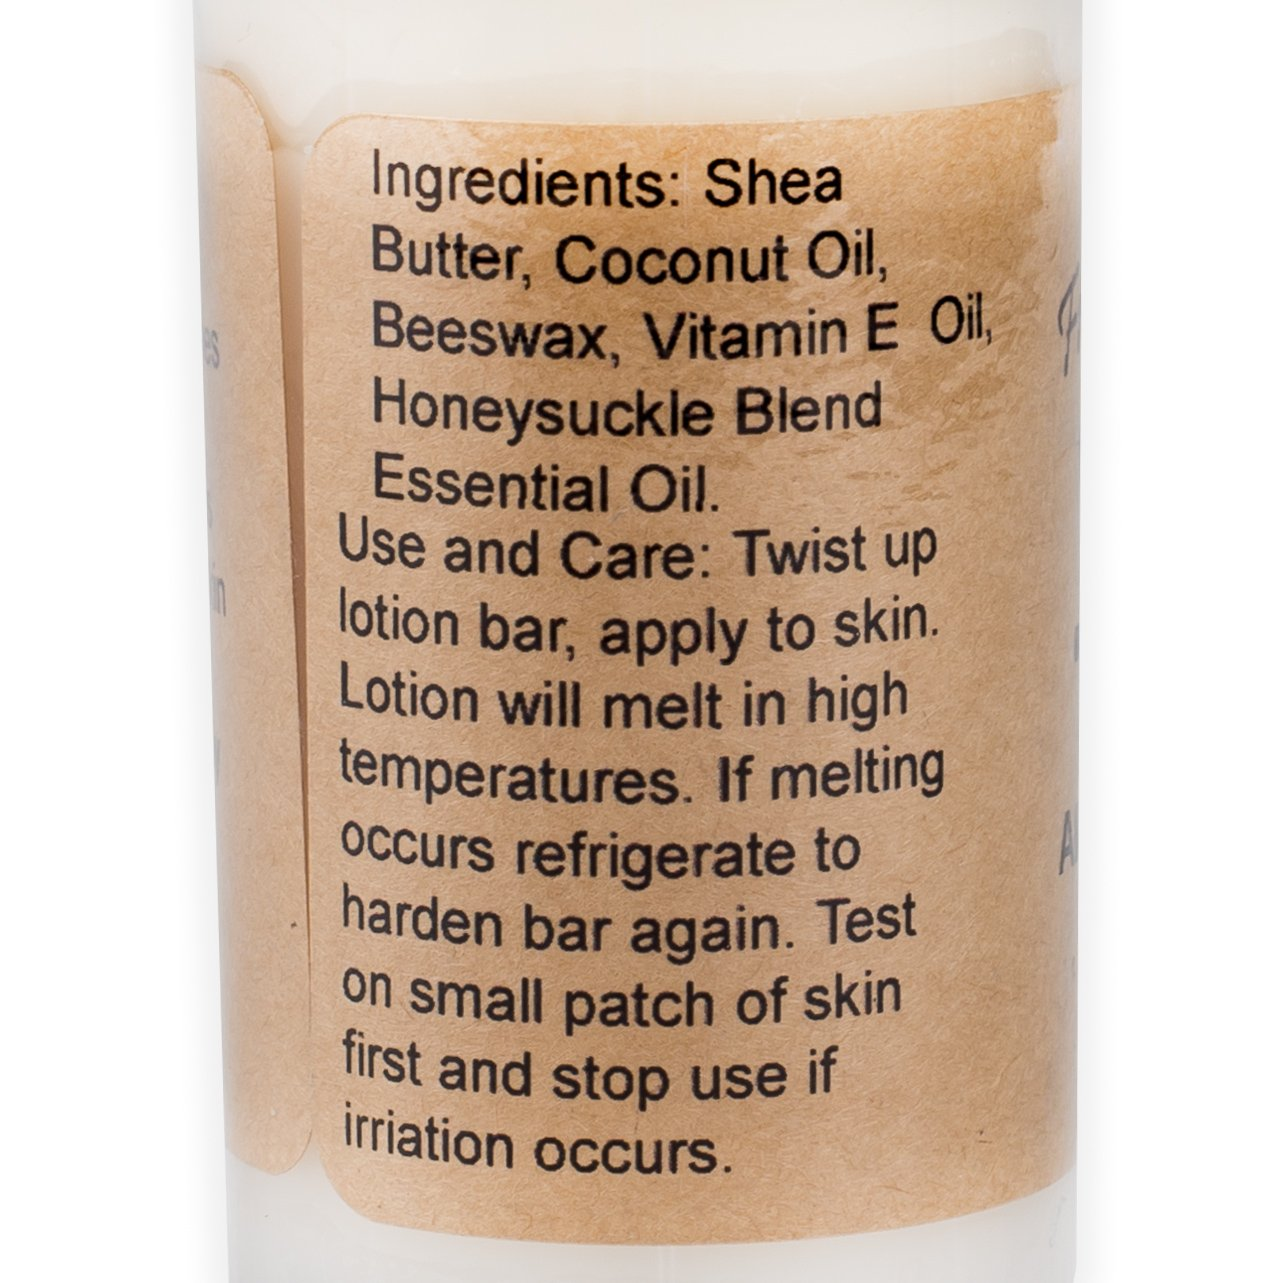 Free Reign Farm Honeysuckle 2 Ounce Large Moisturizing All Natural Lotion Bar by Free Reign Farm